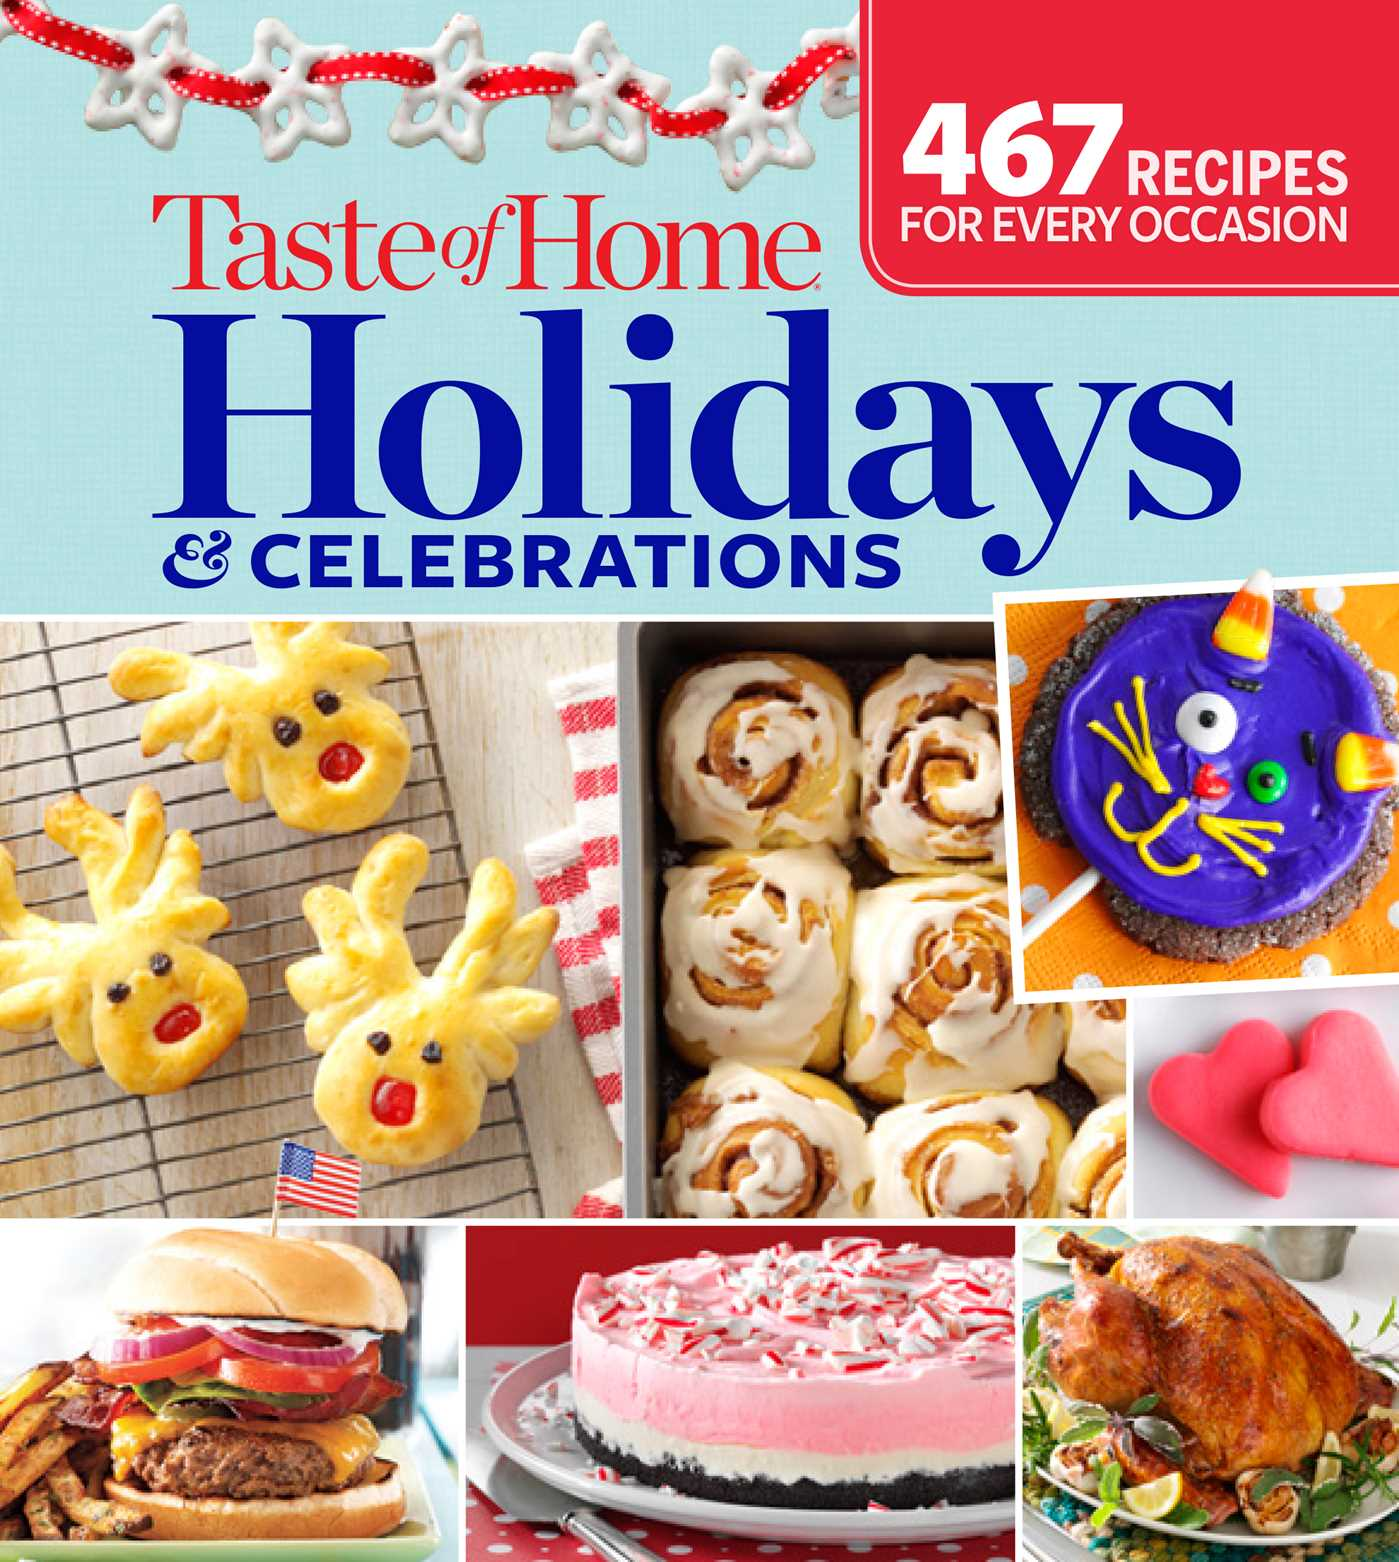 taste and books Get best deals on taste of home magazine subscriptions, renewals, and gifts options at discounted prices risk free 90-day money back guarantee.